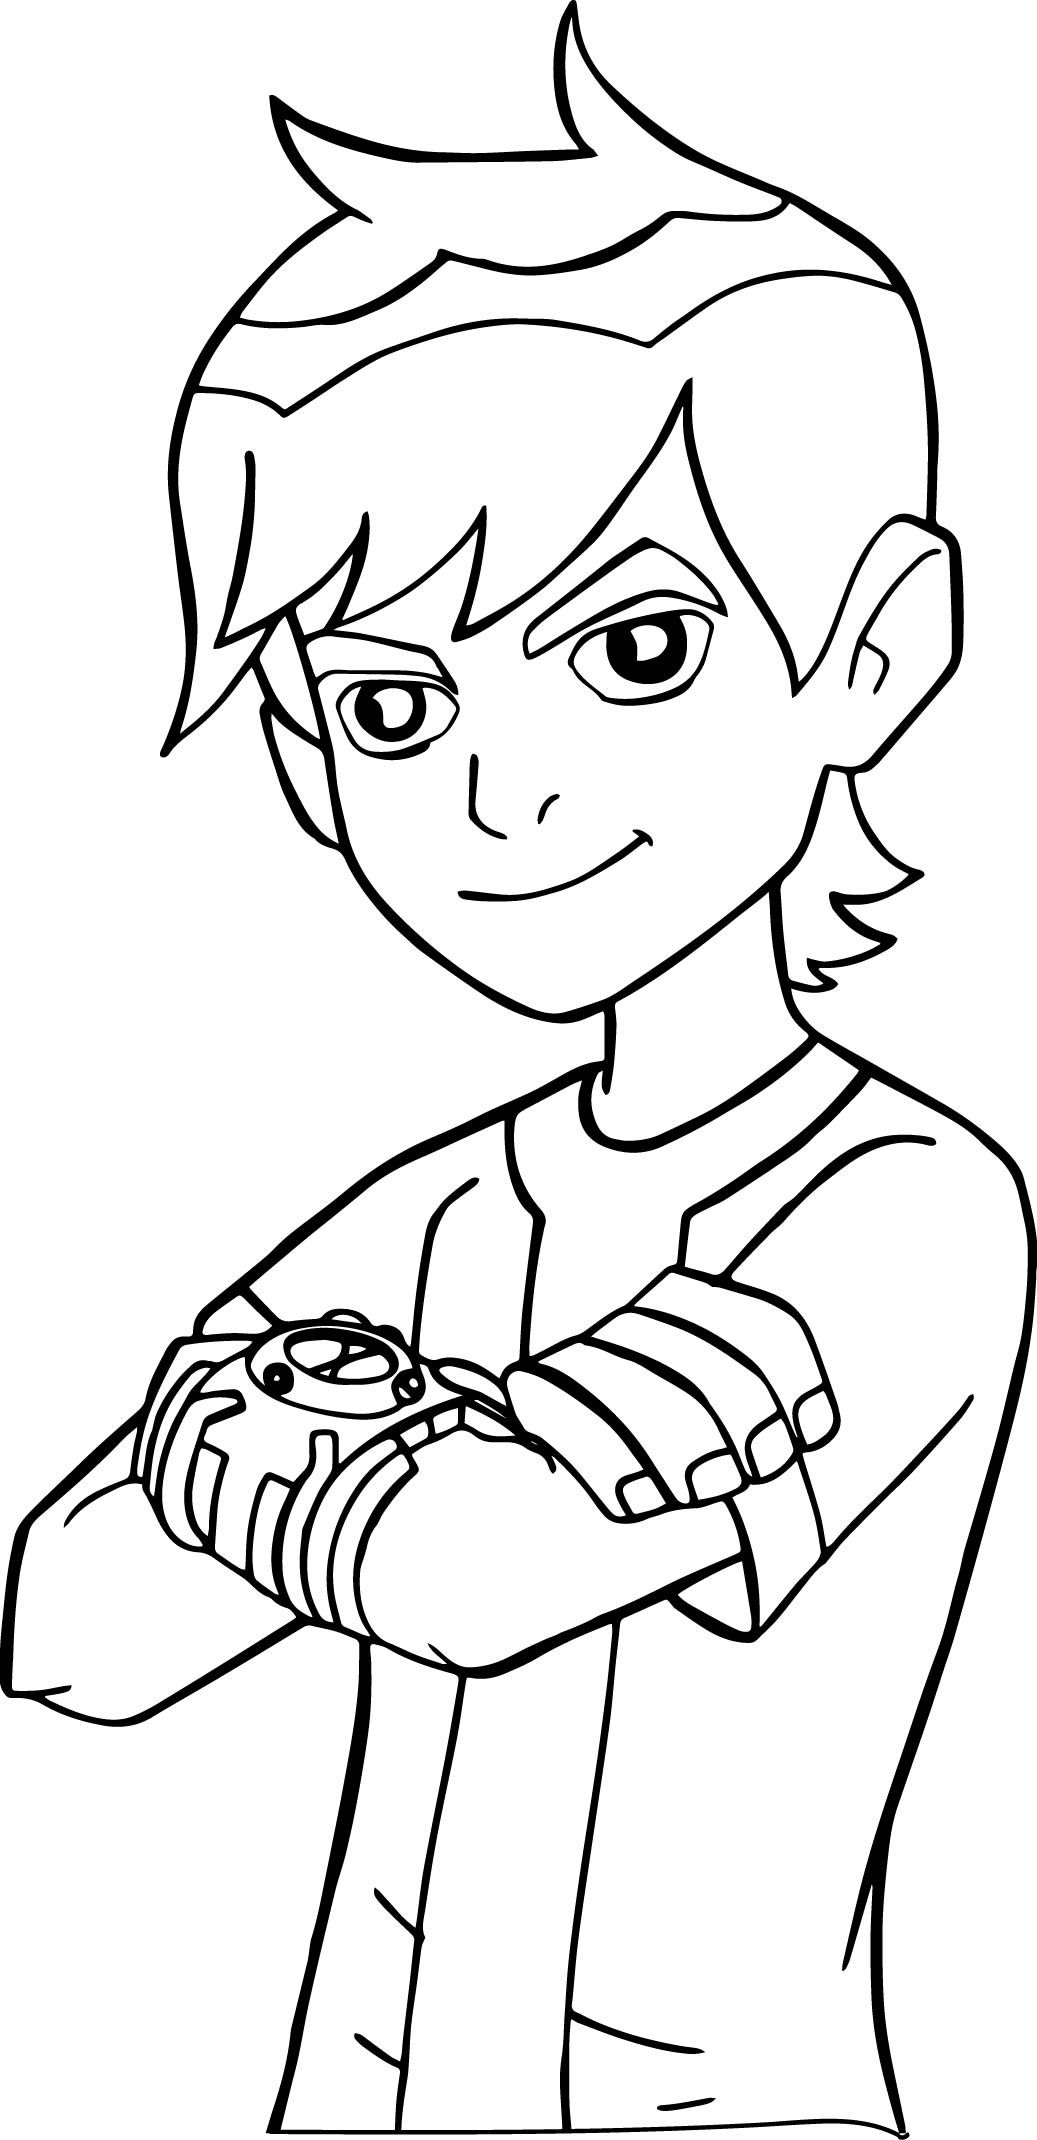 Nice Ben 10 Coloring Pages Images Mcoloring Coloring Pages 10